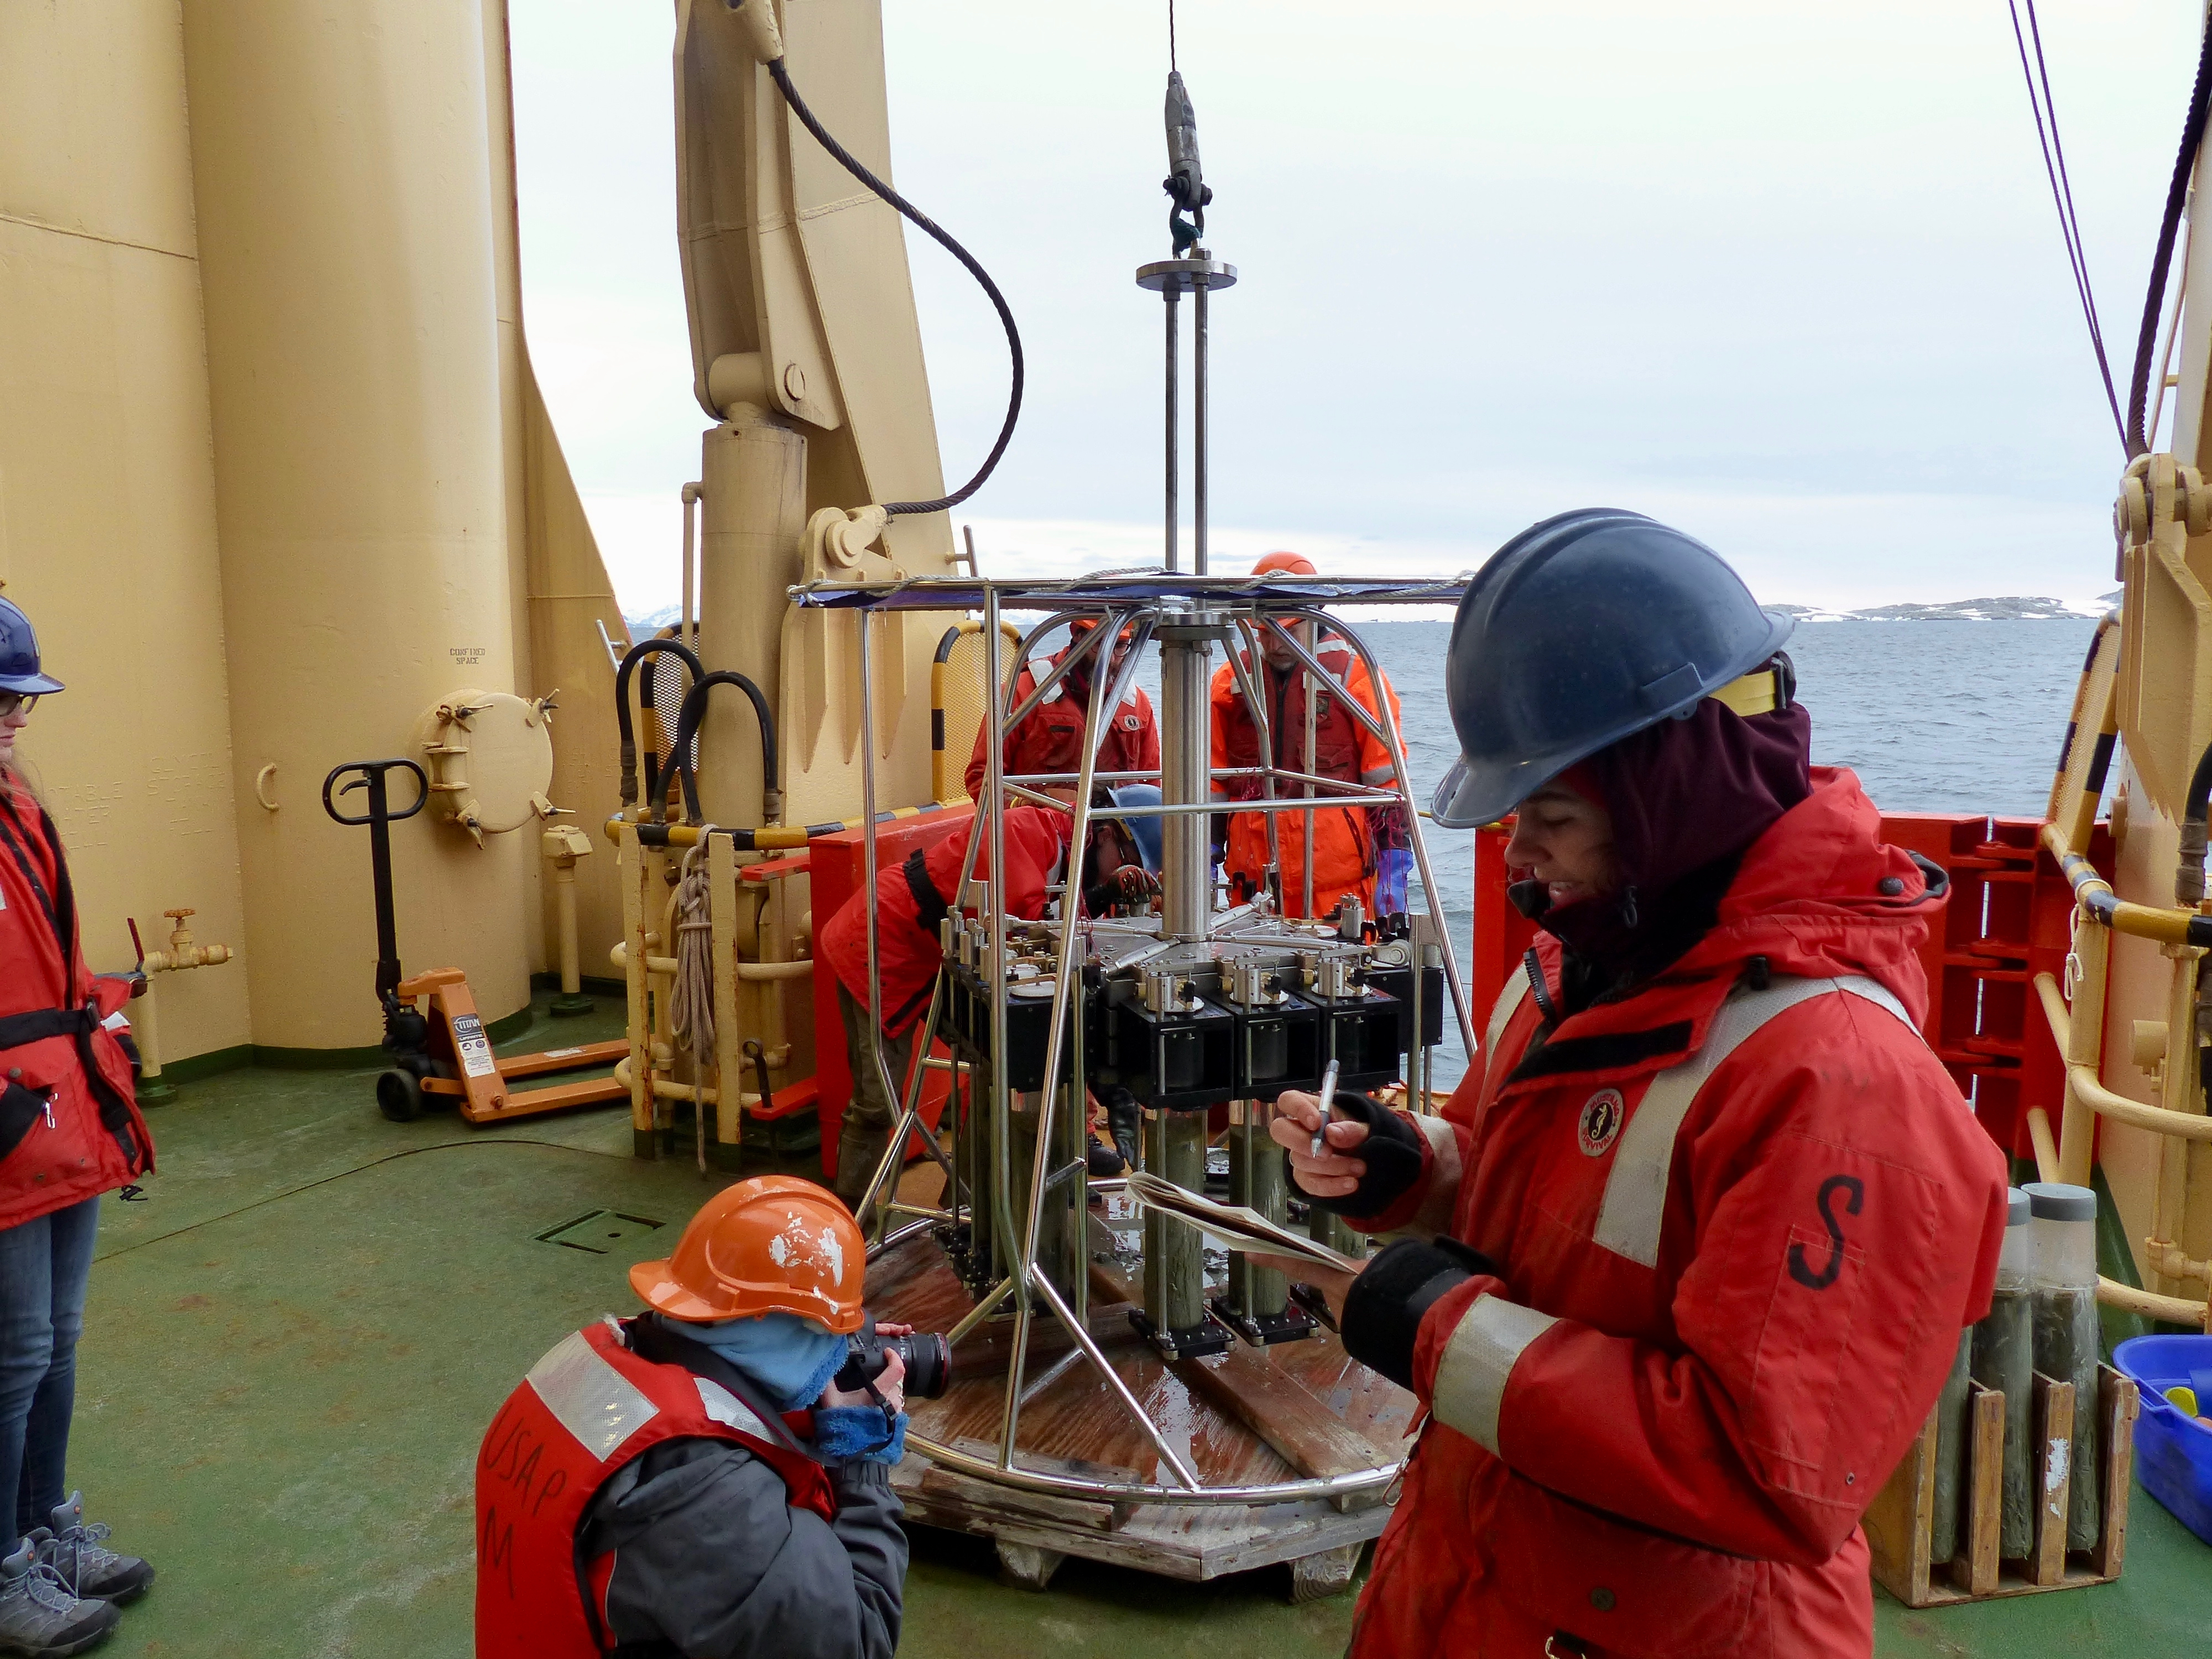 The Megacore has just been brought back from the seafloor with 11 successful sediment cores.